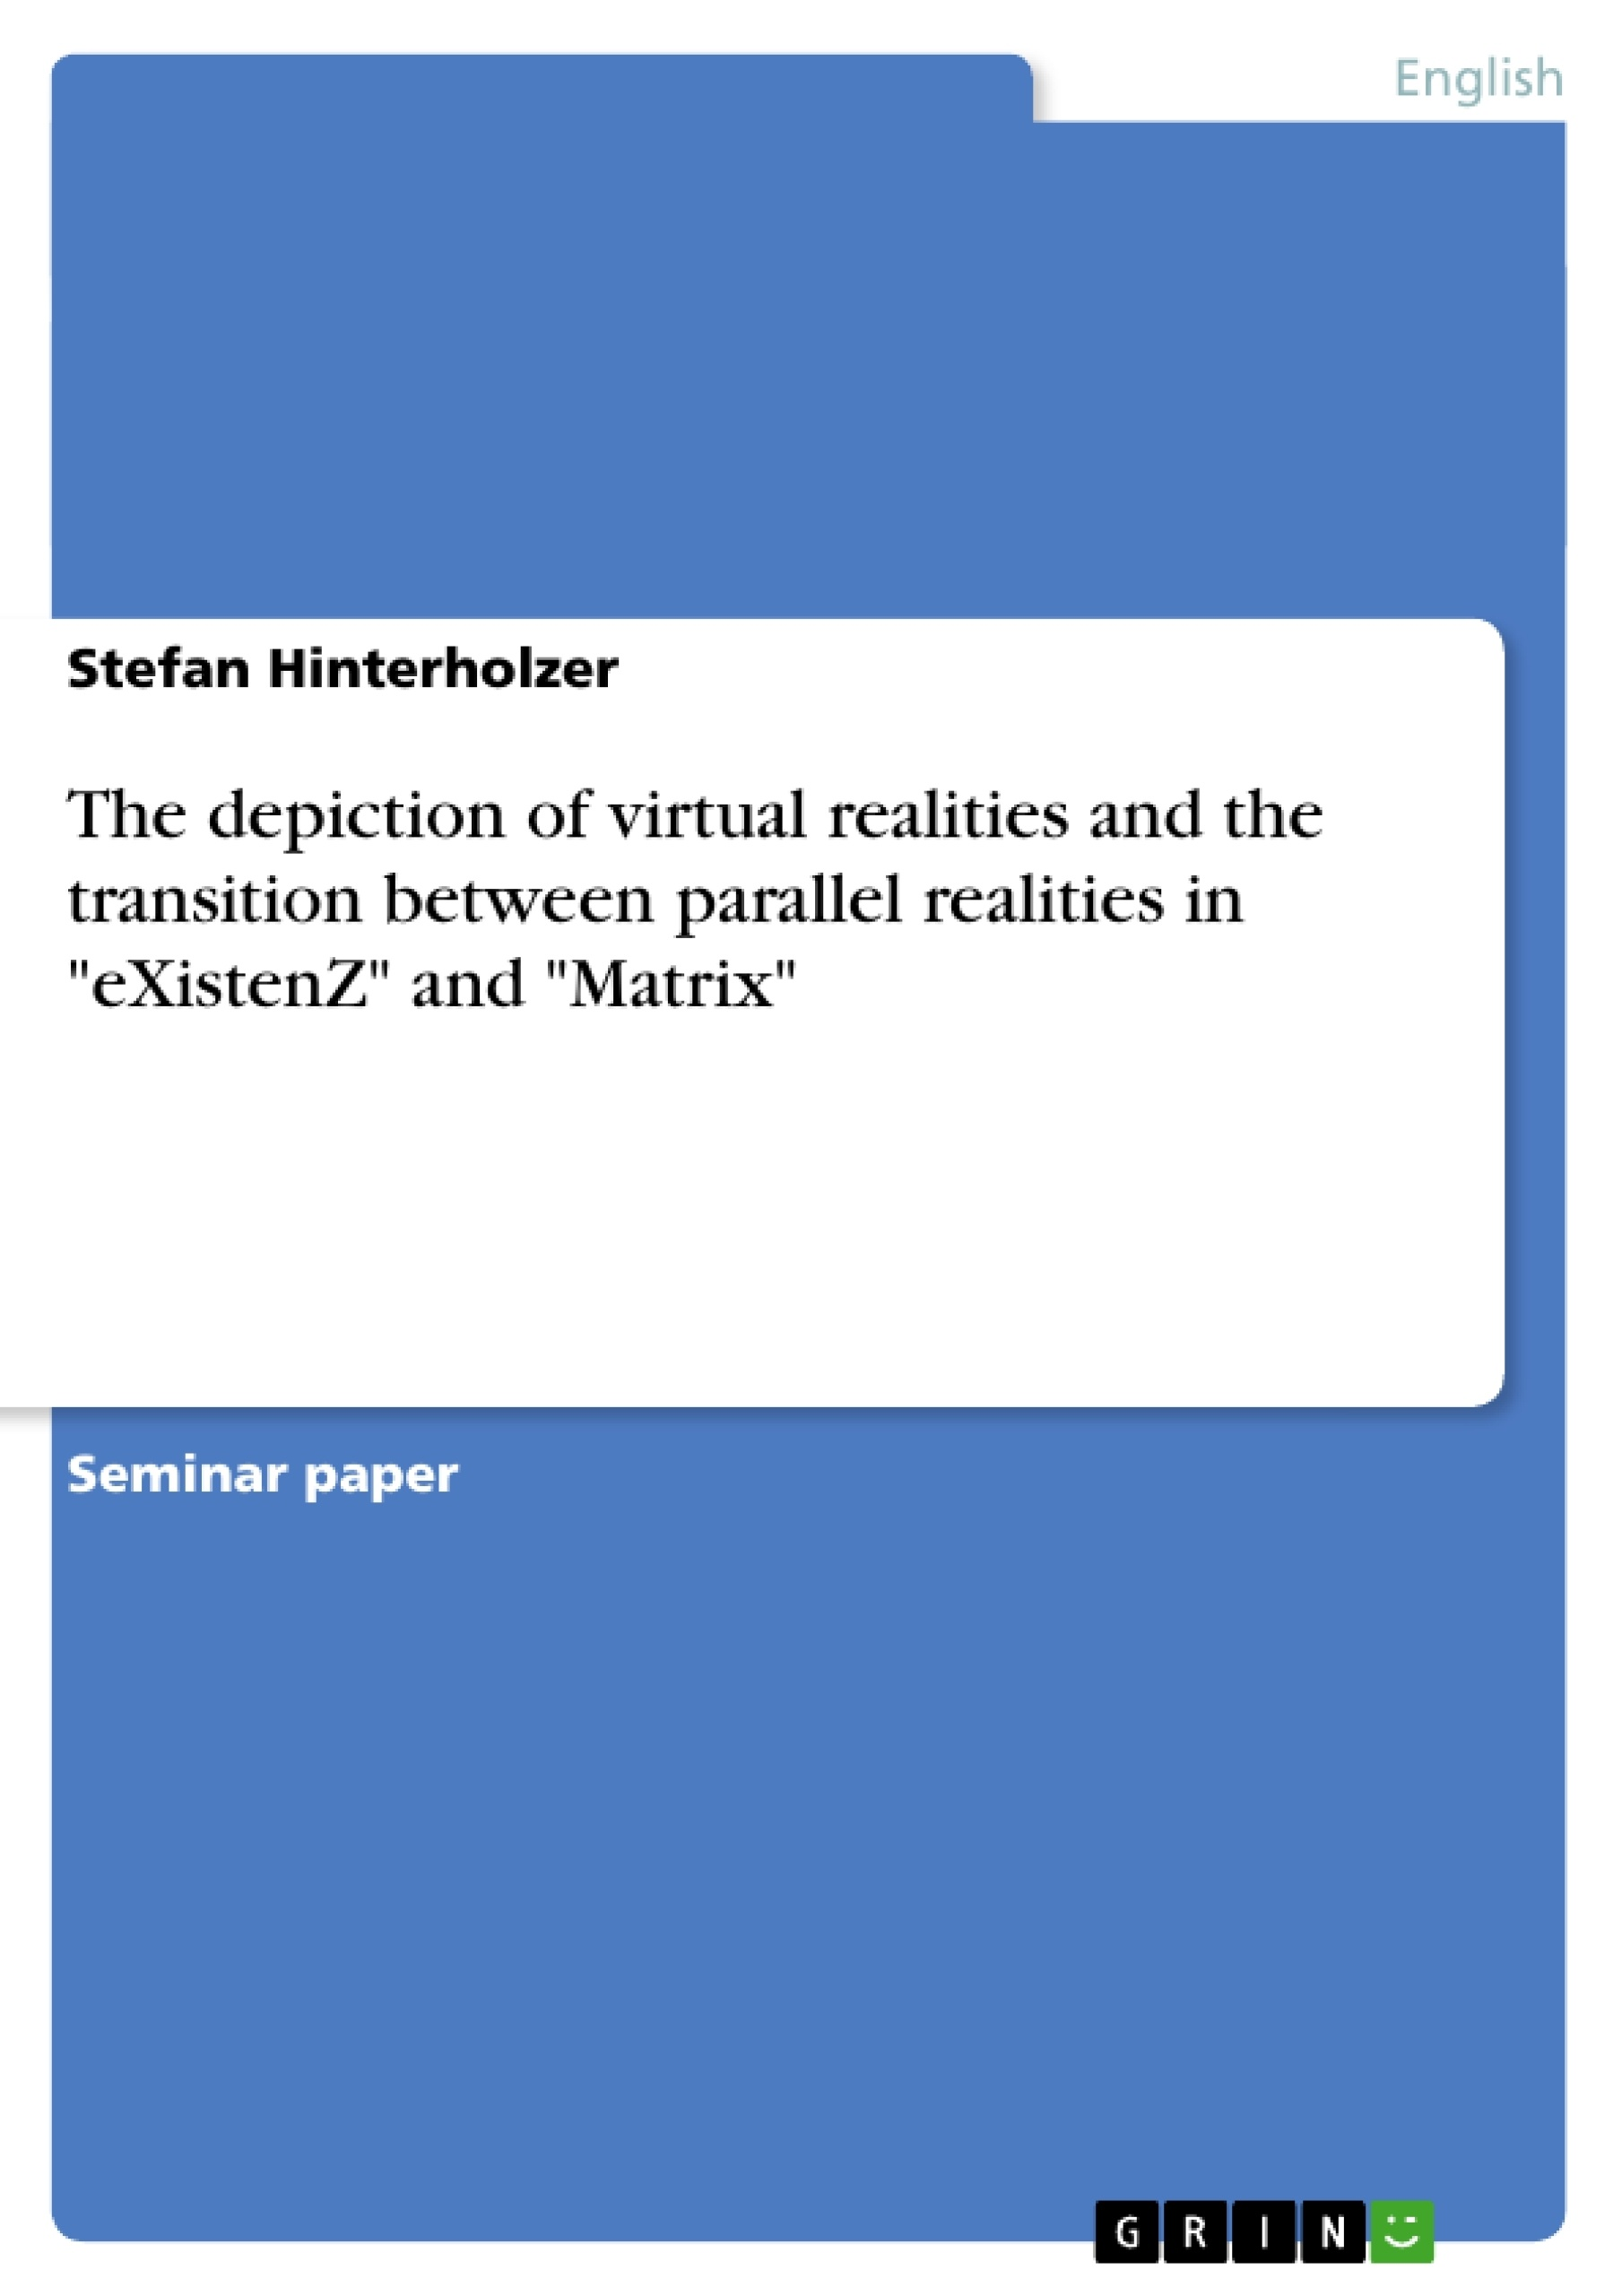 """Title: The depiction of virtual realities and the transition between parallel realities in """"eXistenZ"""" and """"Matrix"""""""